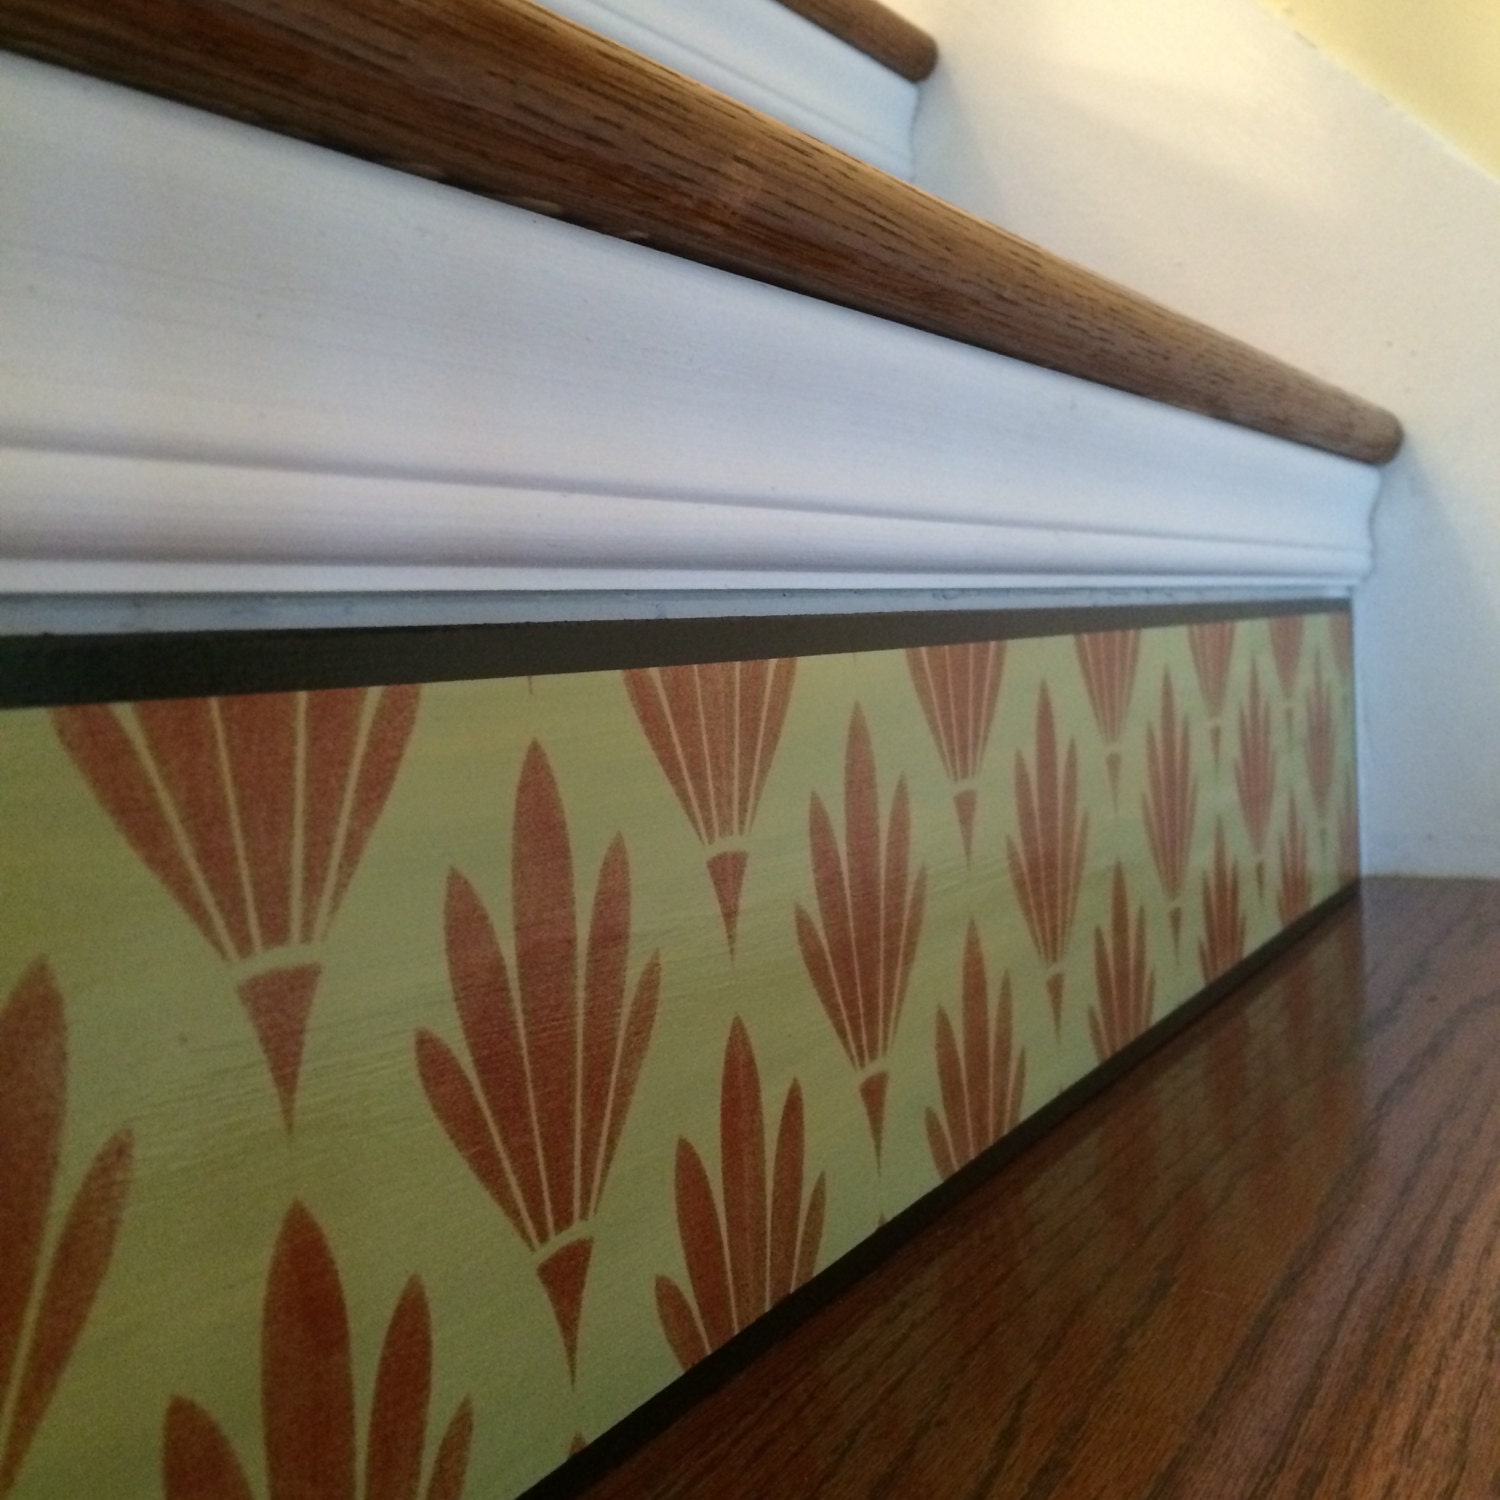 Carved Wood Stair Risers Stair Ideas Stamped Leather: Stair Riser Panel / Alternative To Stair Riser Decals Stair